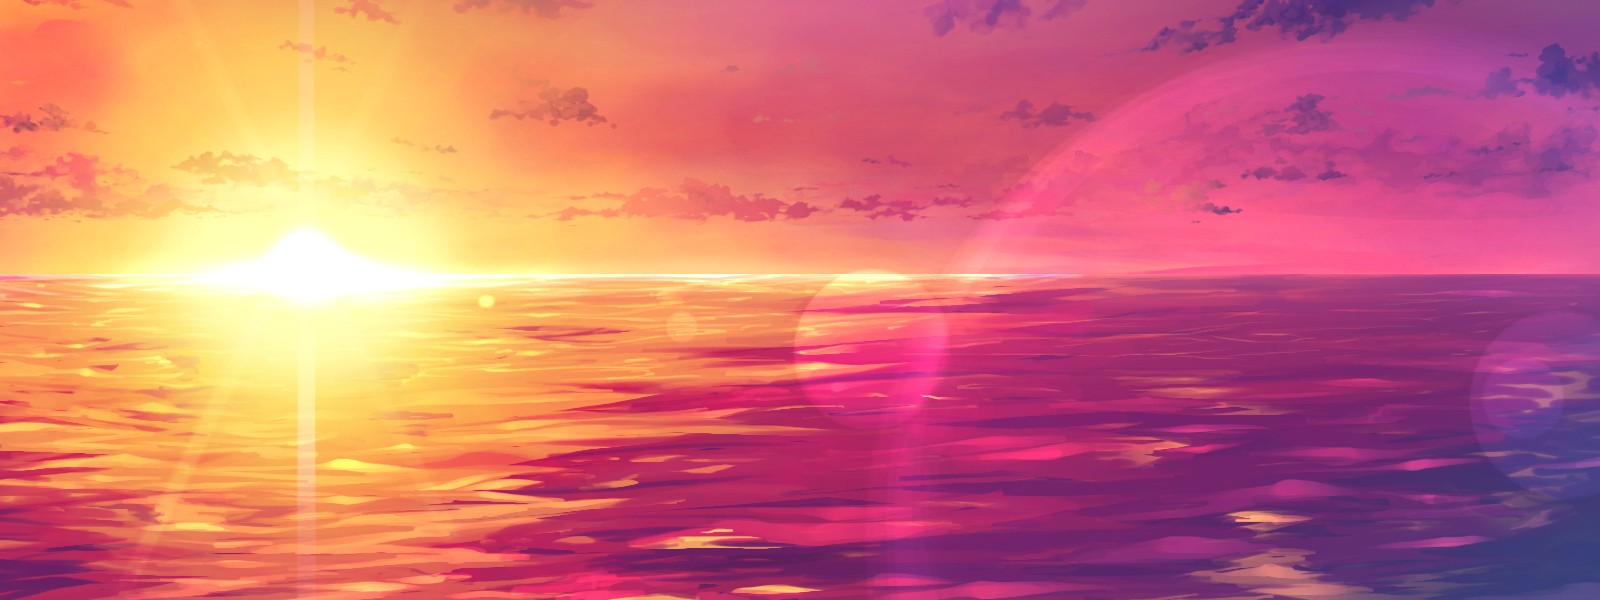 Pink Sunset Backgrounds - HD Wallpapers